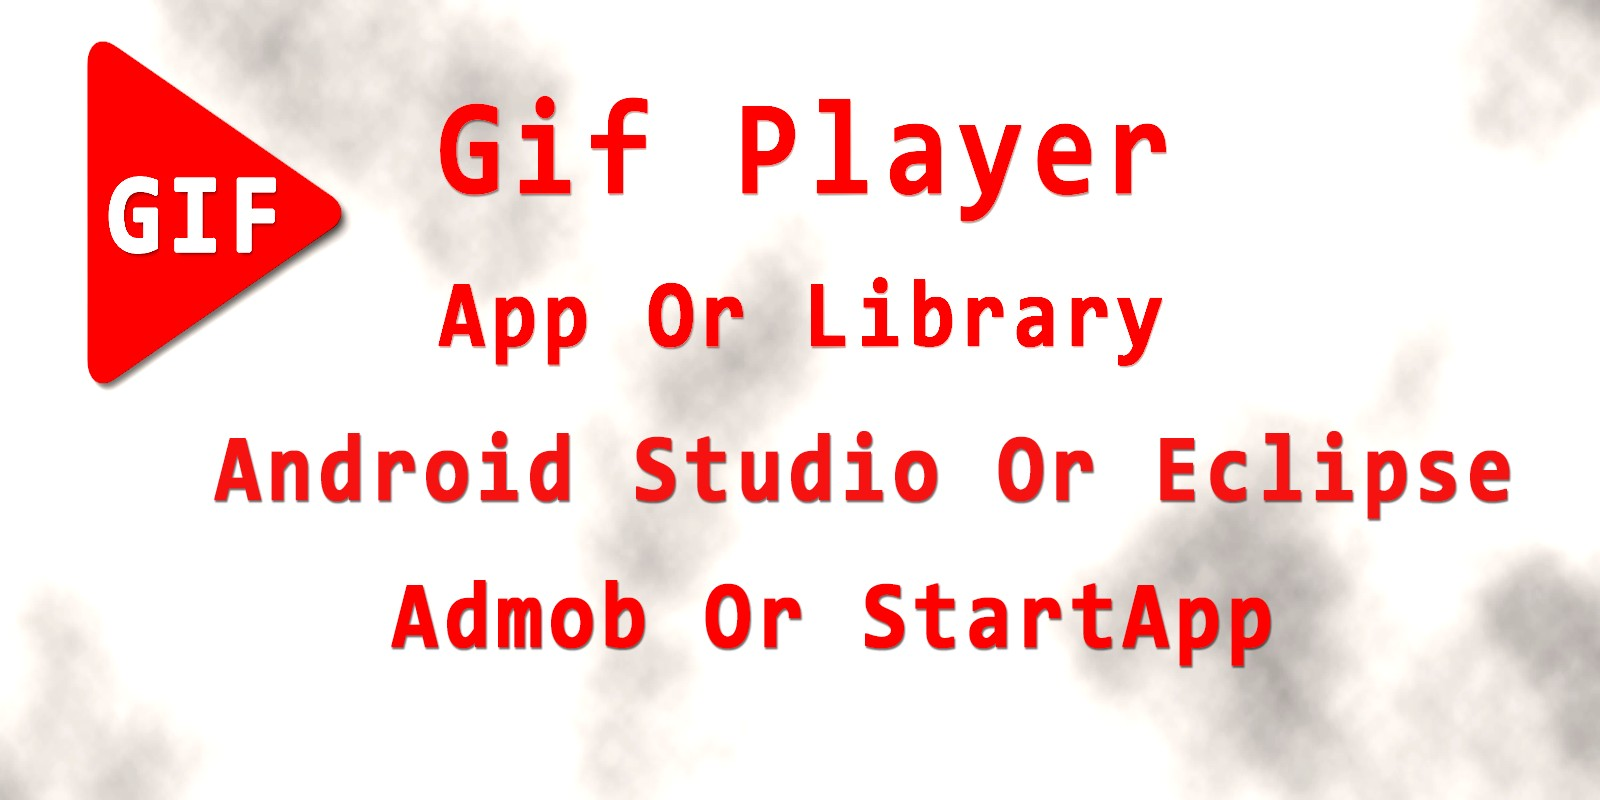 Gif Player - Android App Source Code